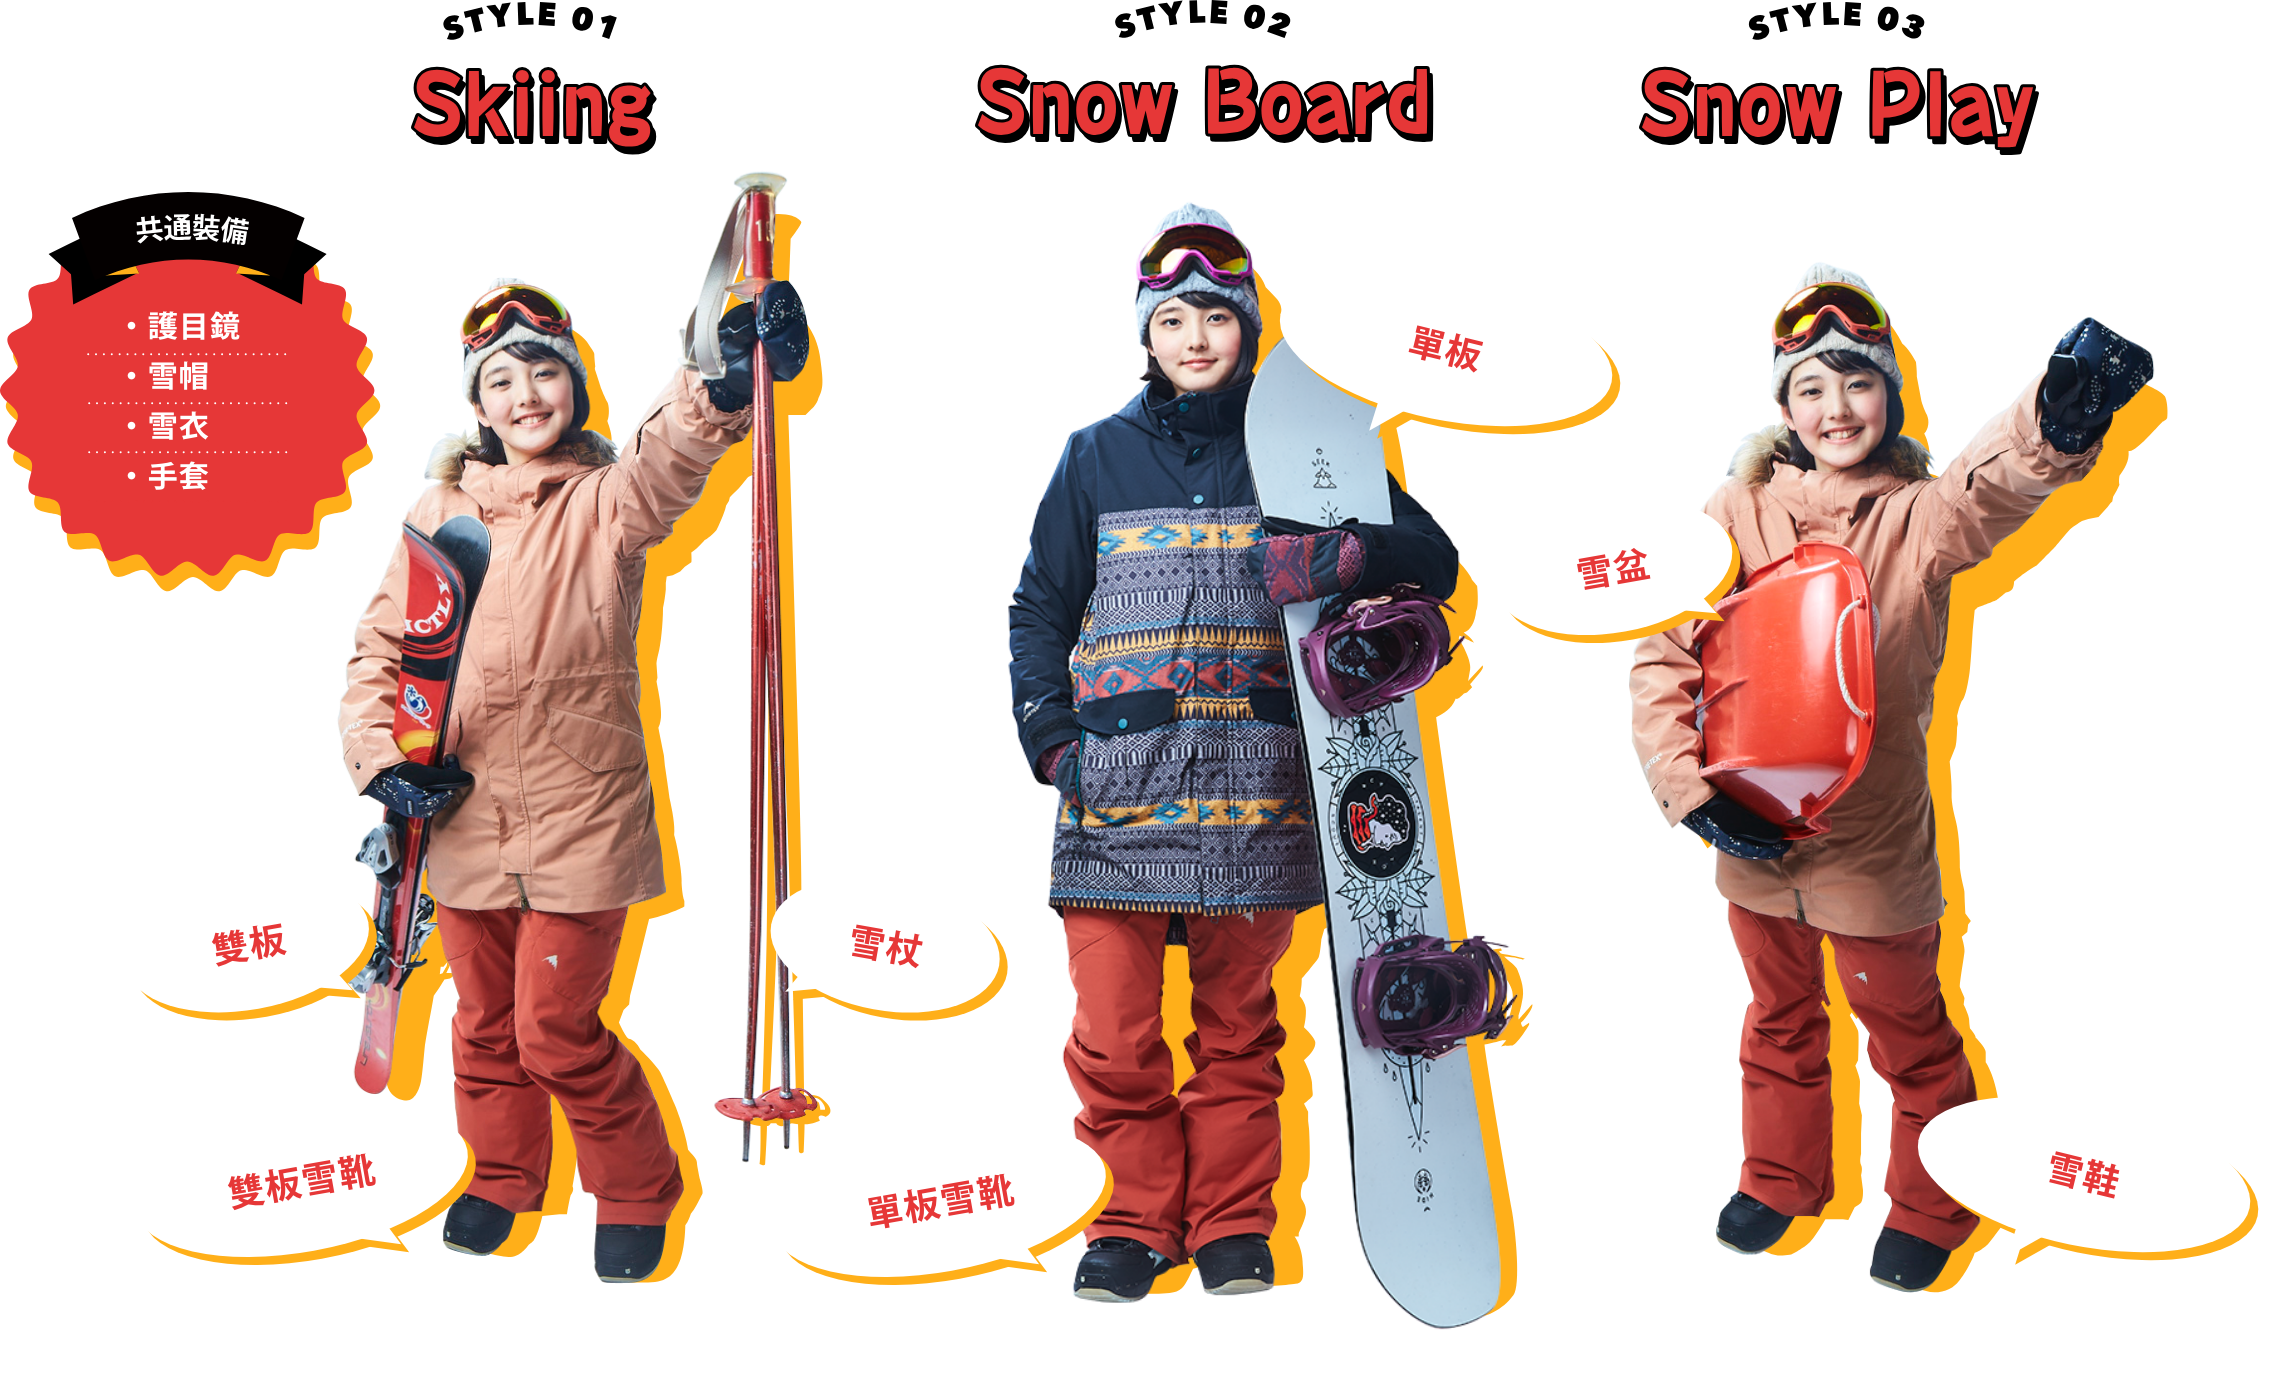 STYLE01 Skiing、STYLE02 Bord、STYLE03 Play